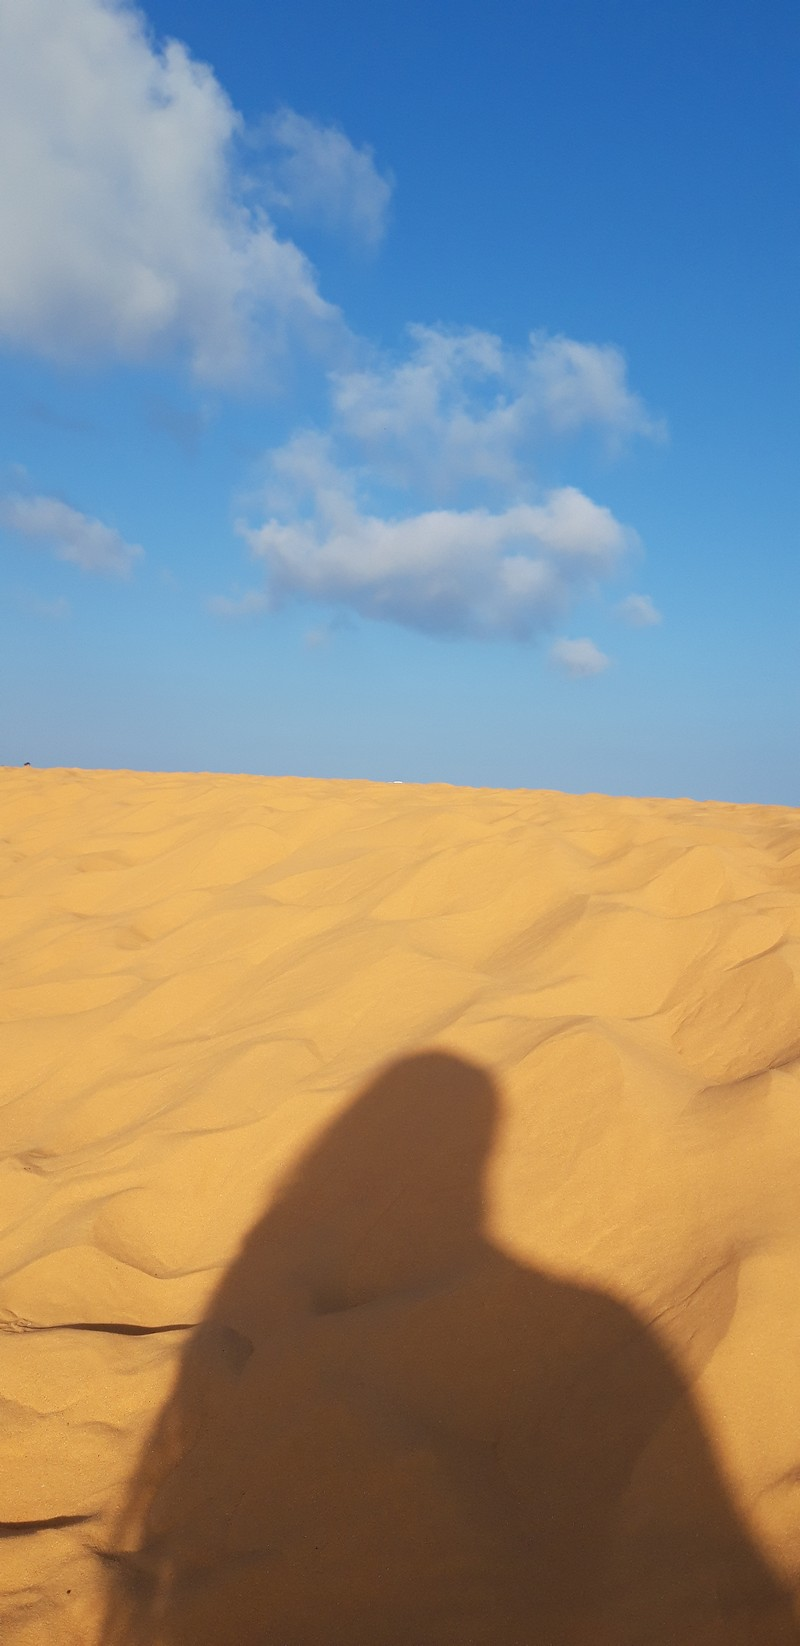 I had no idea that such a landscape that resembles a desert could be found in Vietnam at Mui Ne sand dunes, the biggest attraction in Mui Ne.